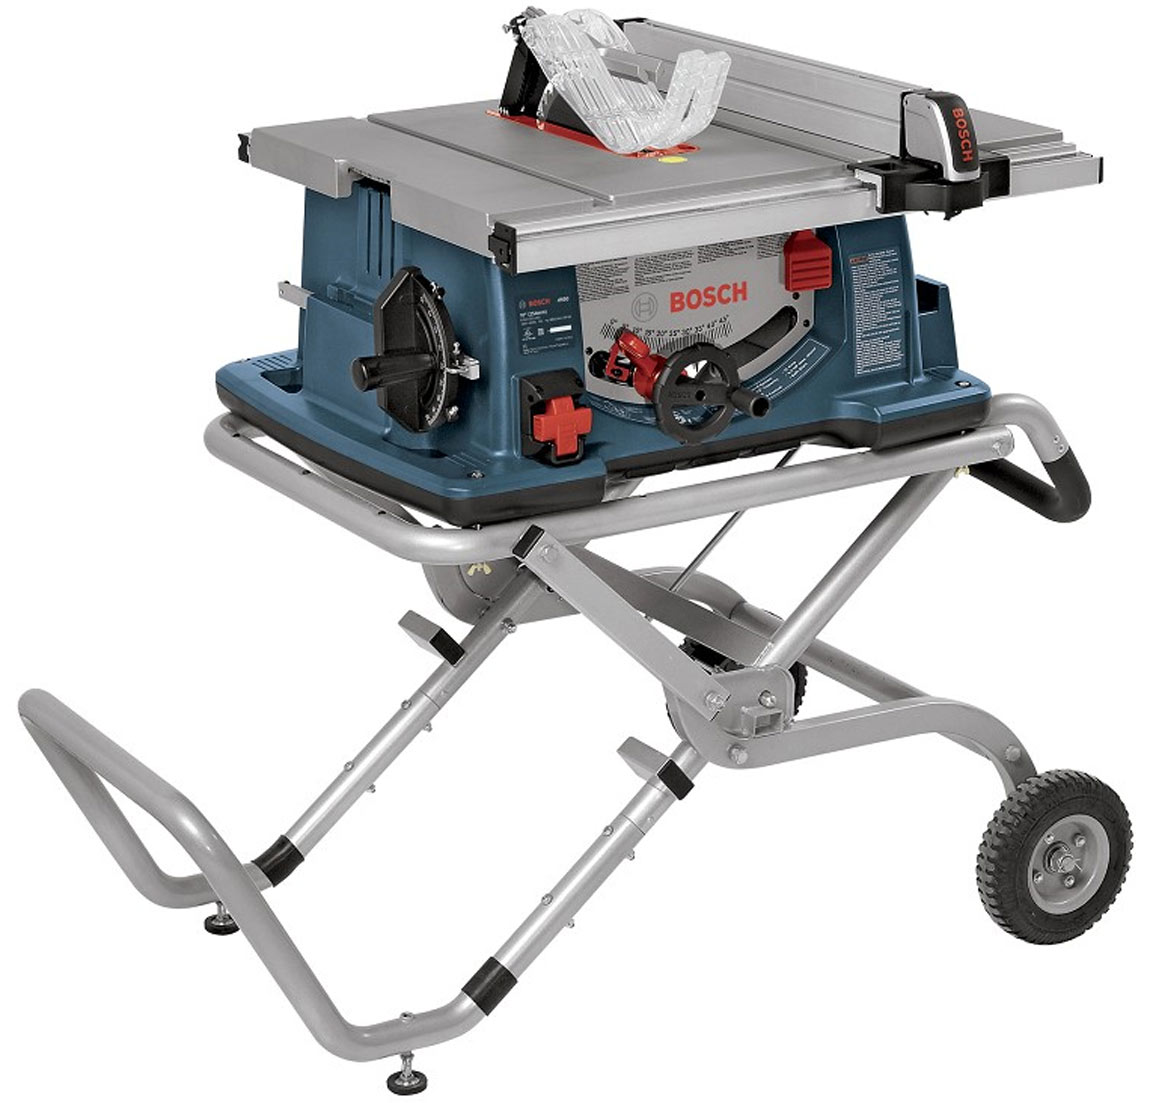 Bosch 4100 09 table saw review sturdy and accurate for 10 inch table saw blade reviews